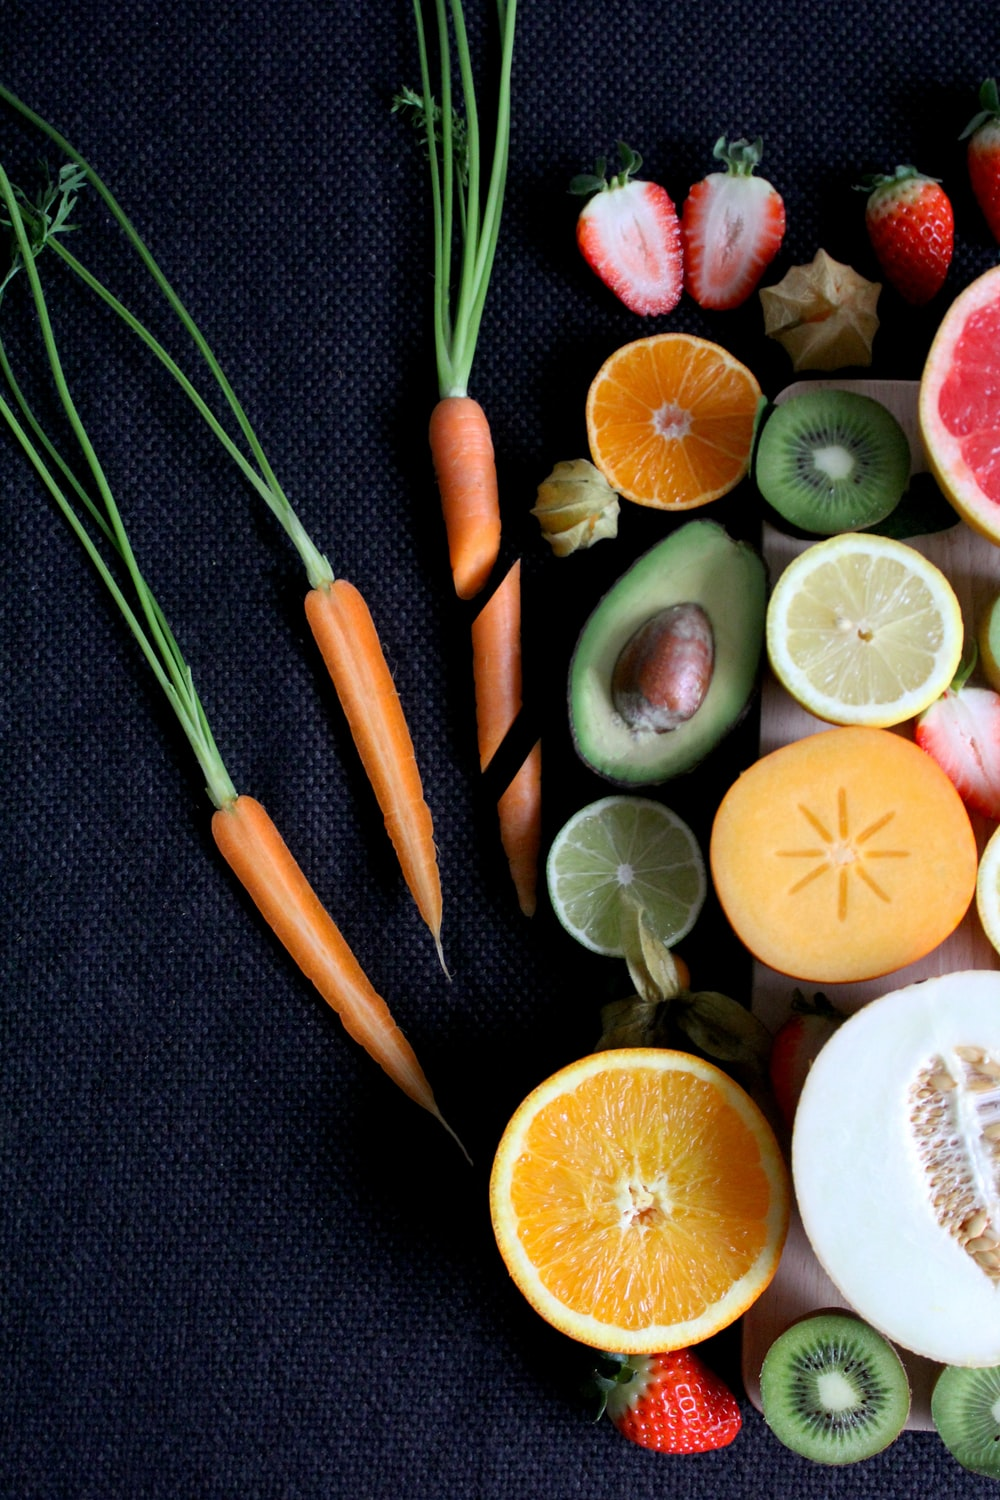 Assortment of sliced vegetable and fruits on board